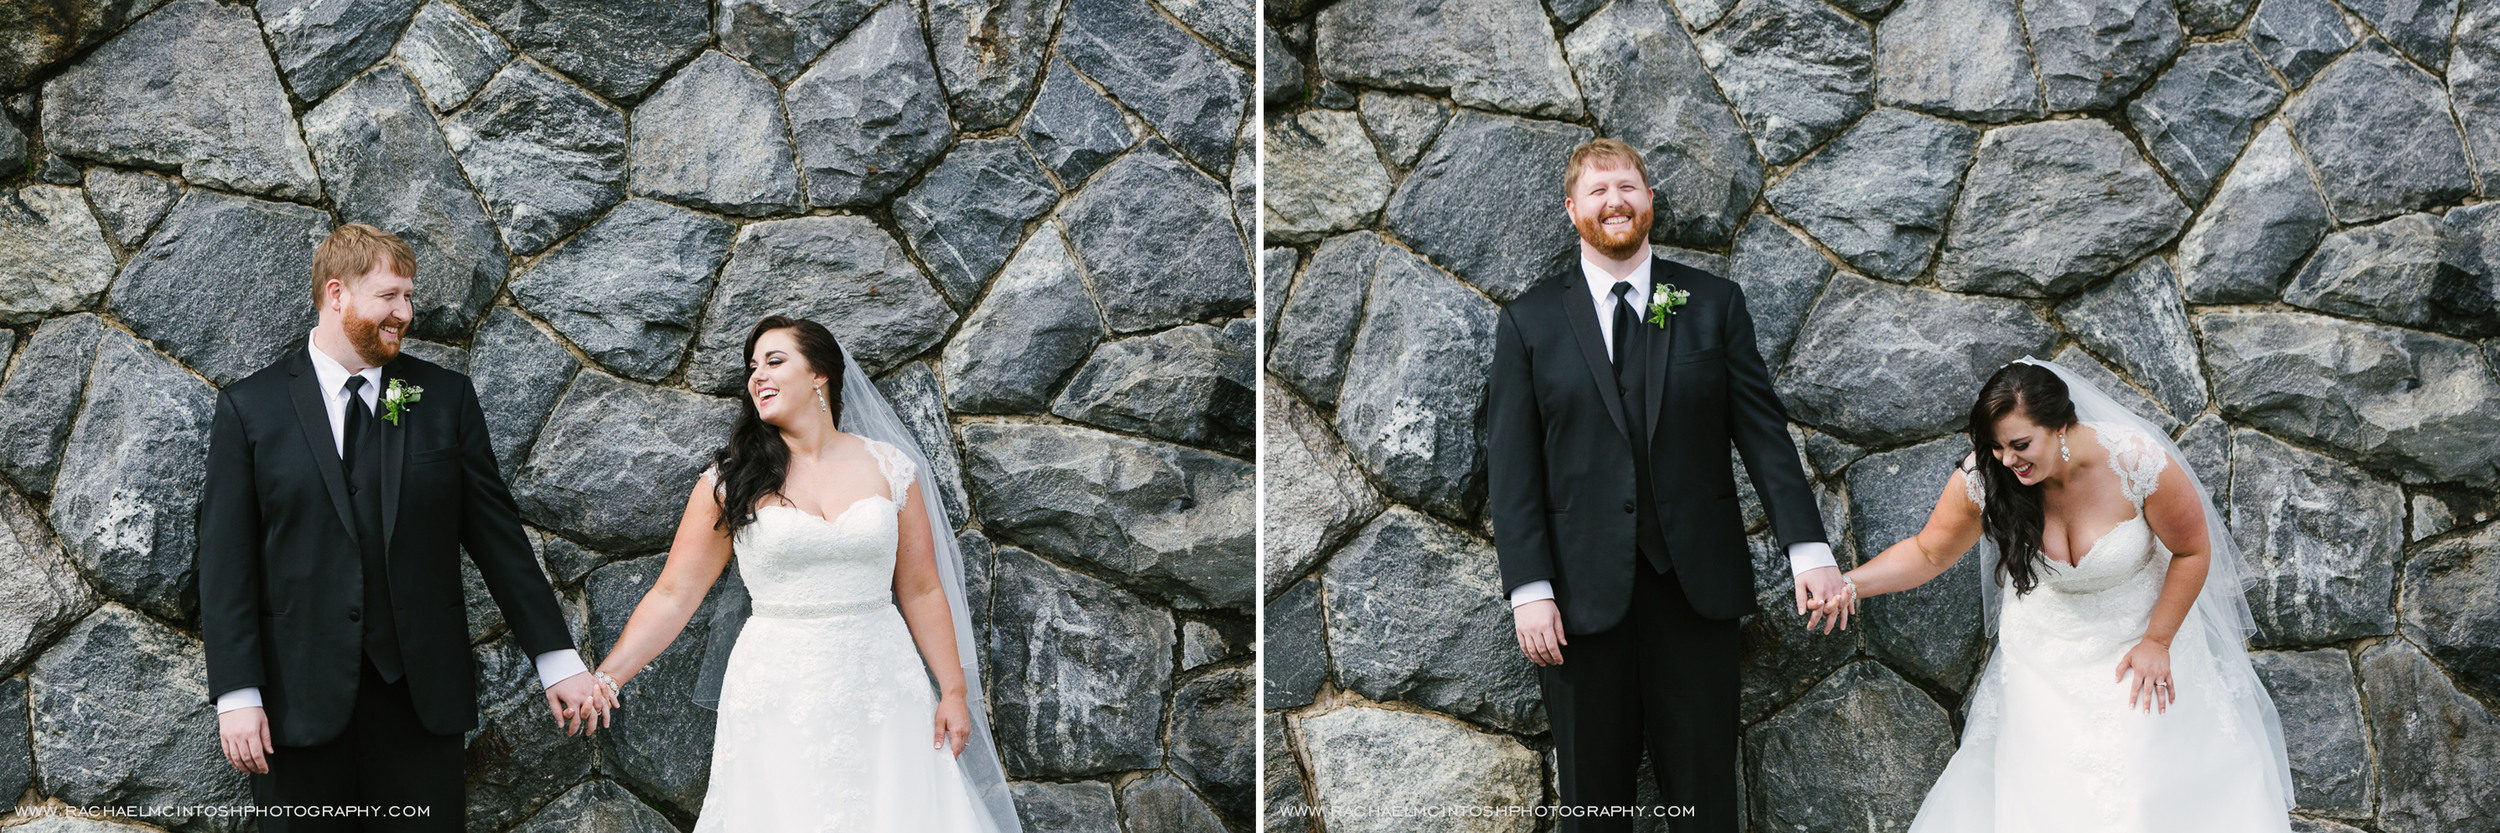 Biltmore Wedding Portraits-Rachael McIntosh Photography-20.jpg